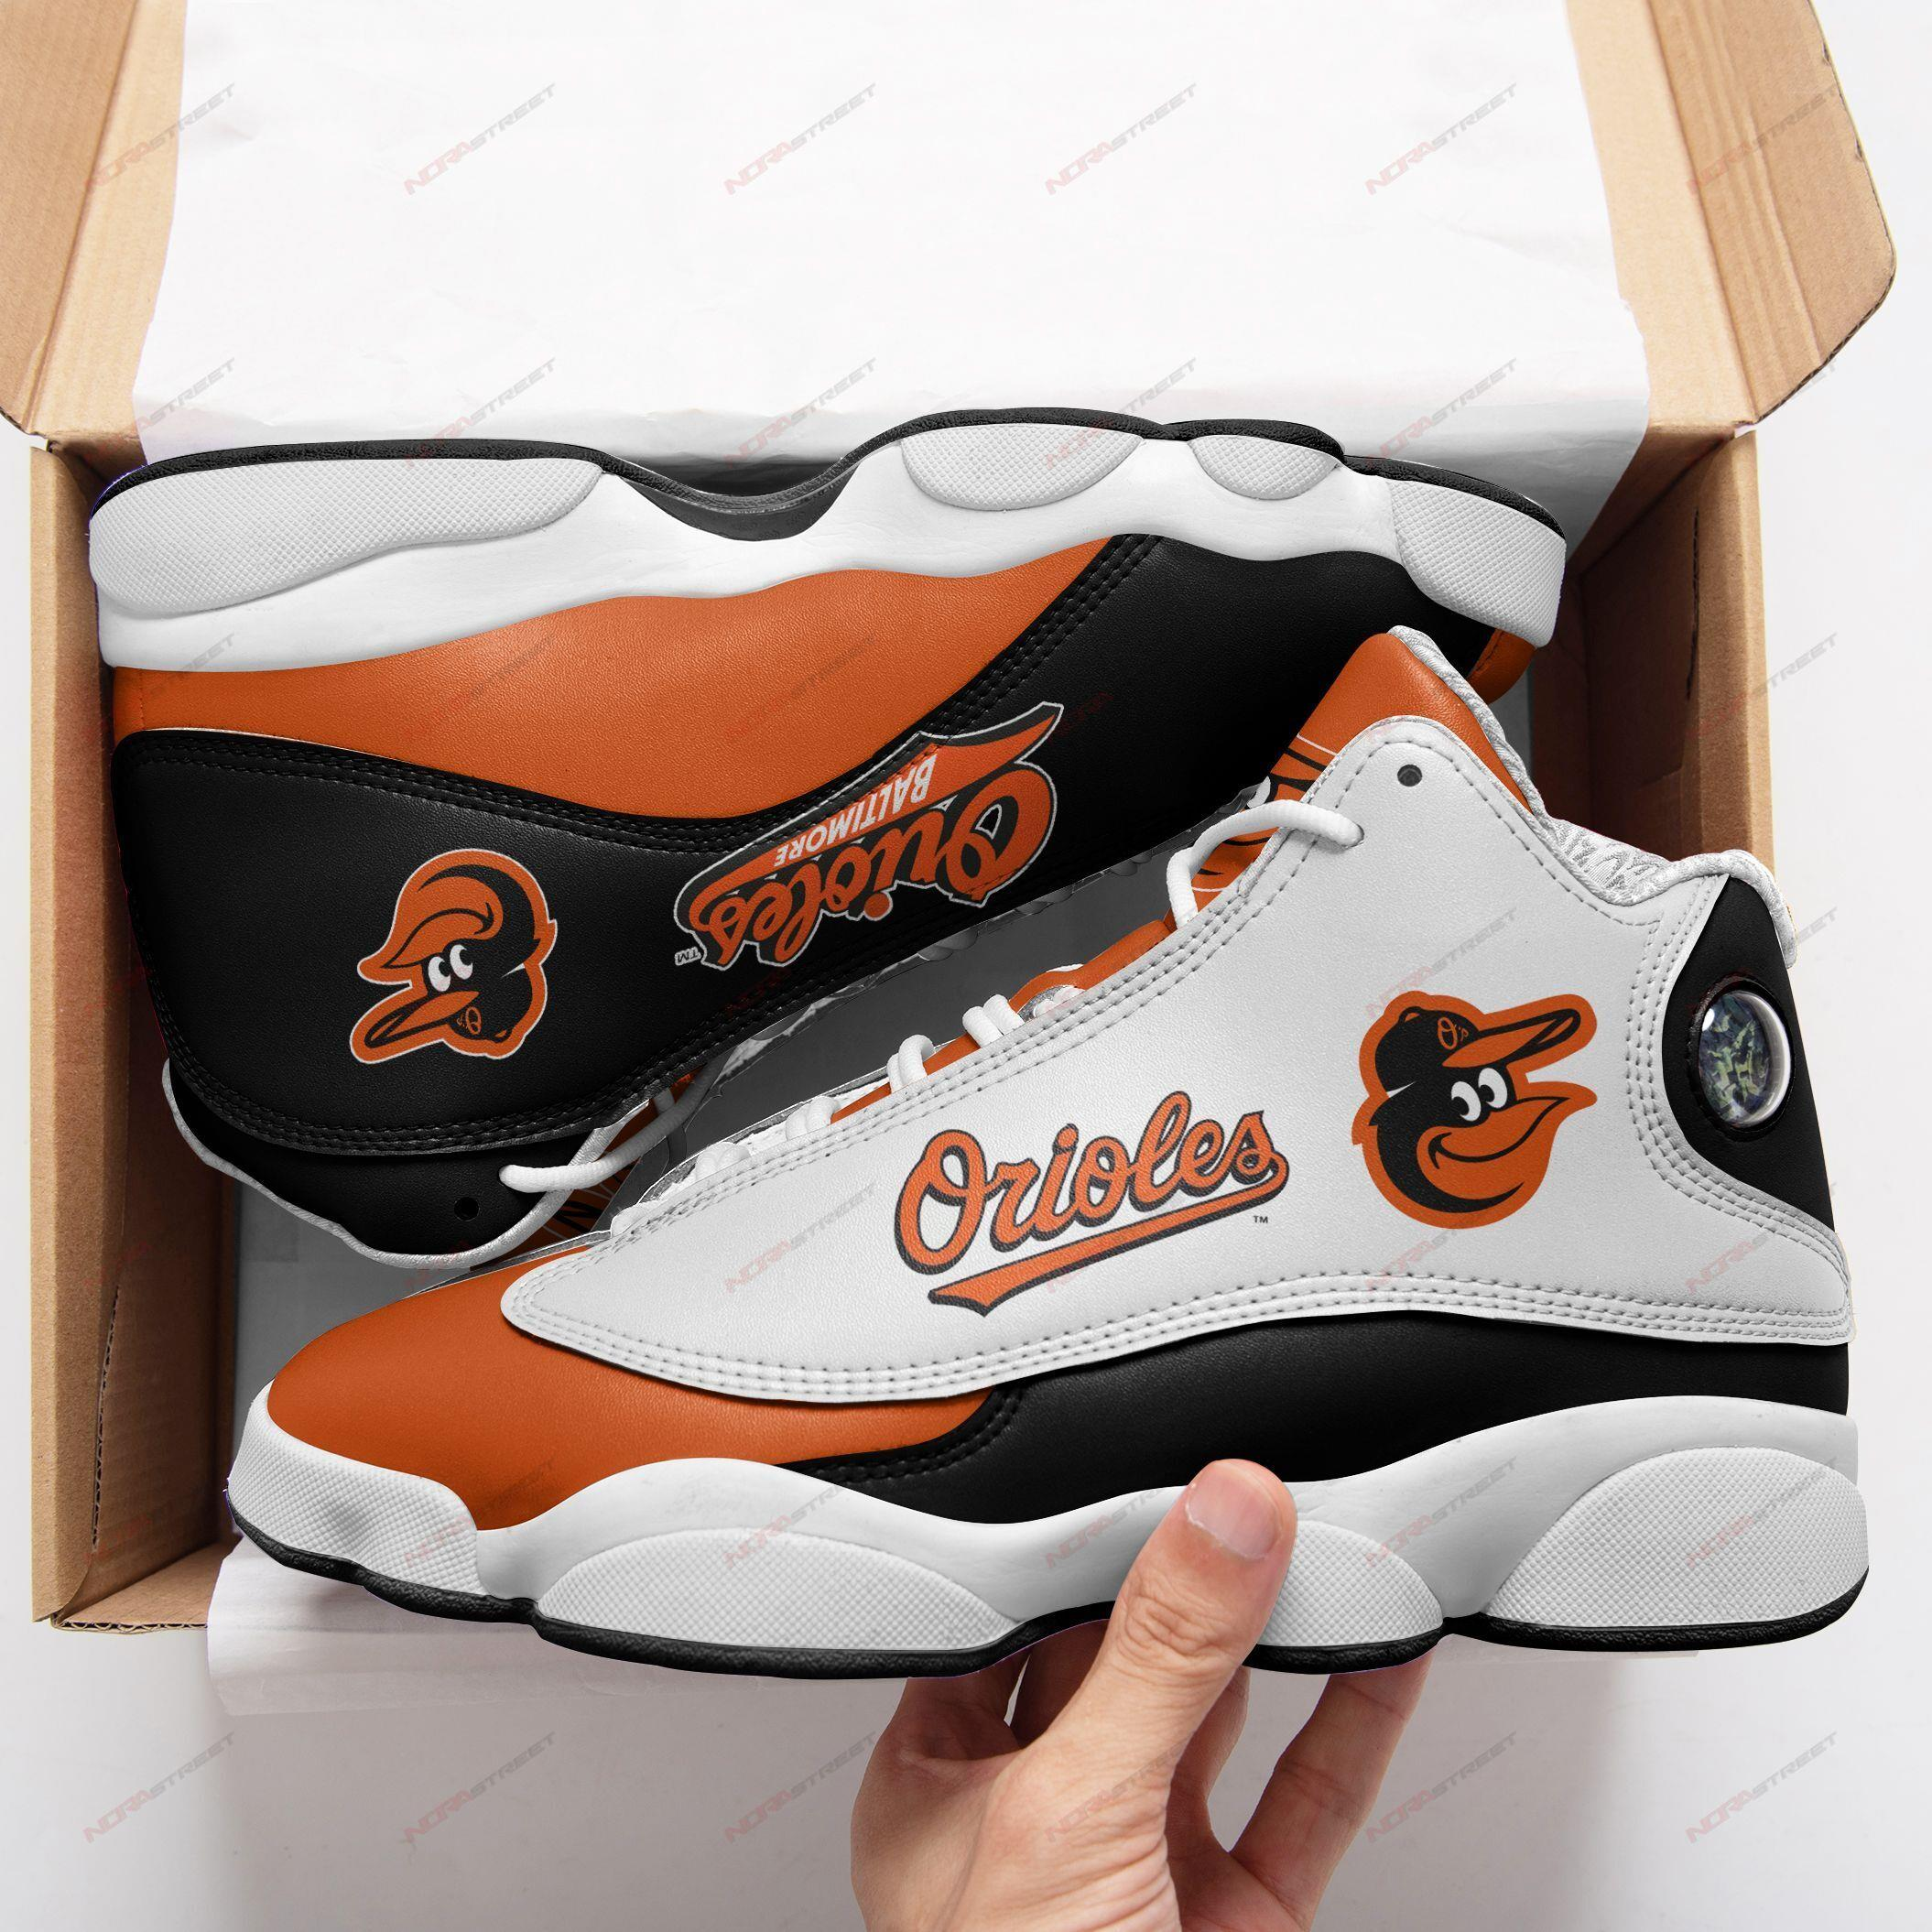 Baltimore Orioles Air Jordan 13 Sneakers Sport Shoes Full Size